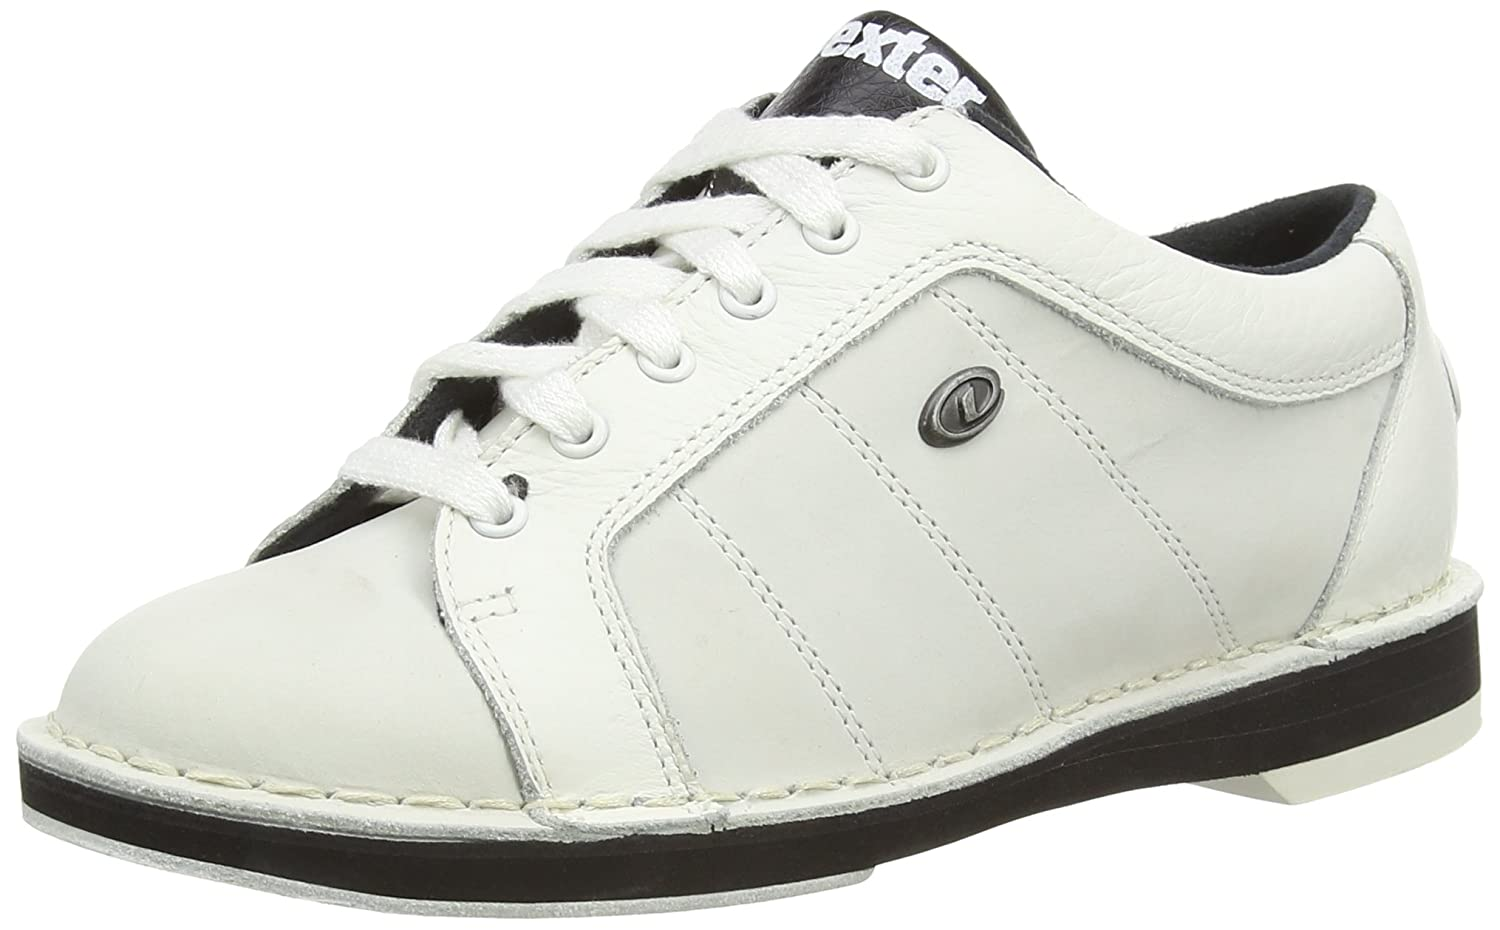 Dexter Women's SST Left Hand Bowling Shoes, White, 11 B900-19 LH